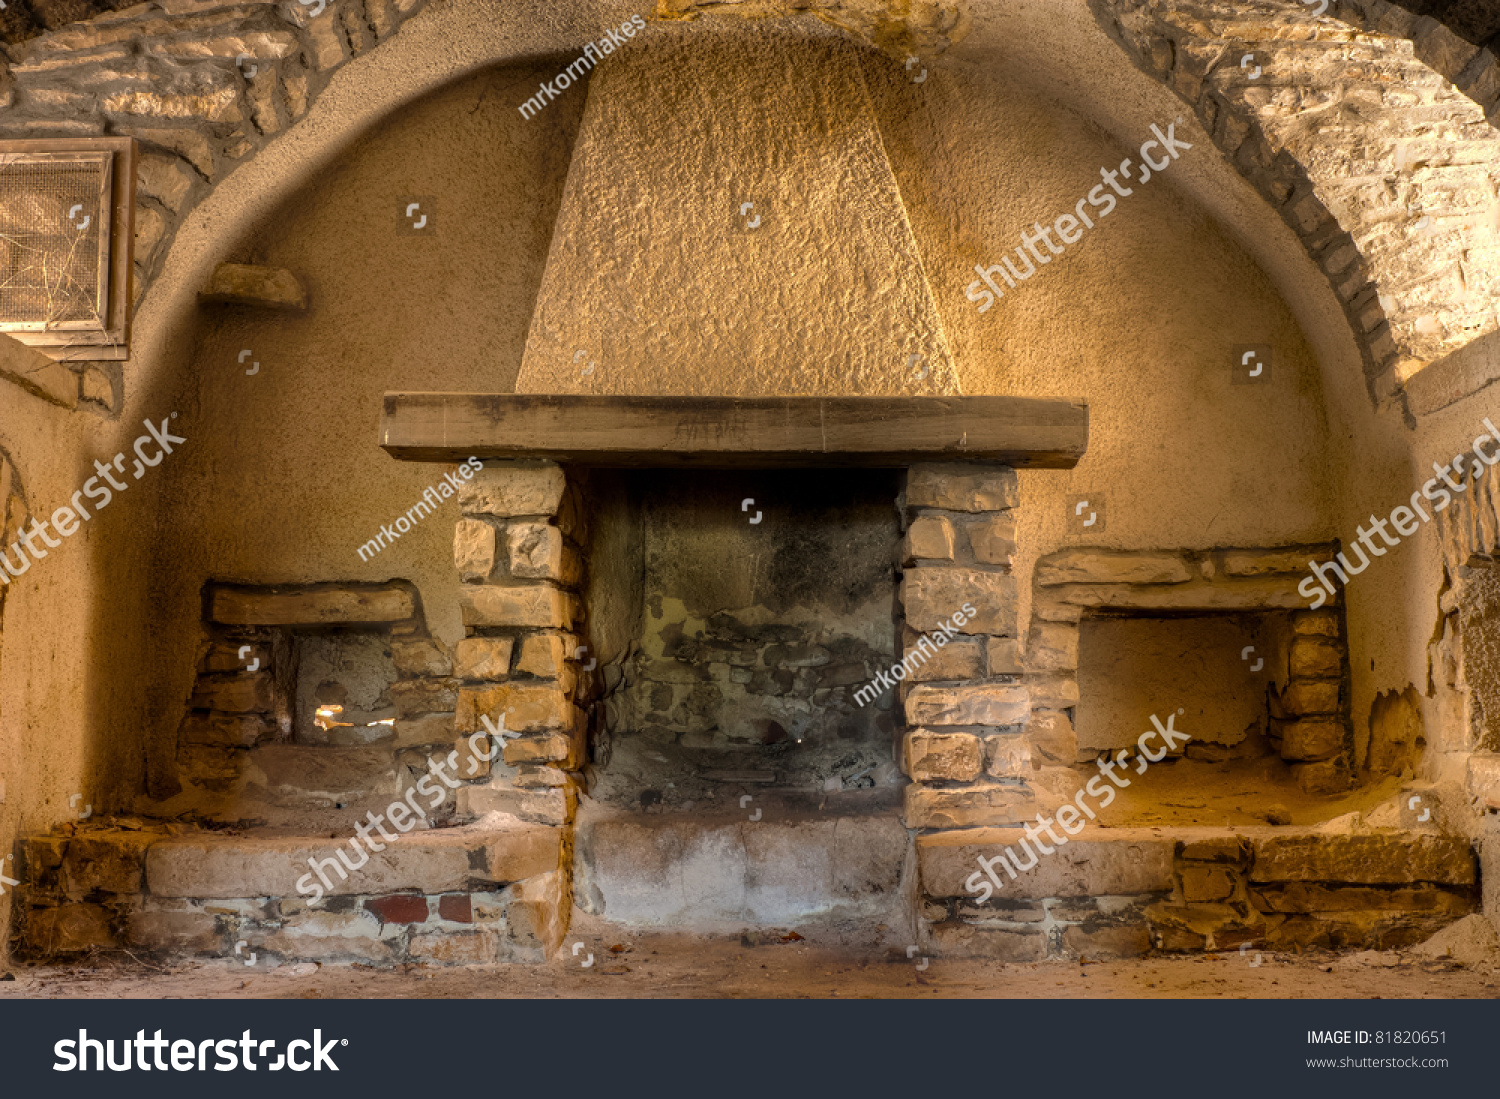 Old Farmhouse Fireplaces Old Fireplace Farmhouse Interior Apulia Italy Stock Photo